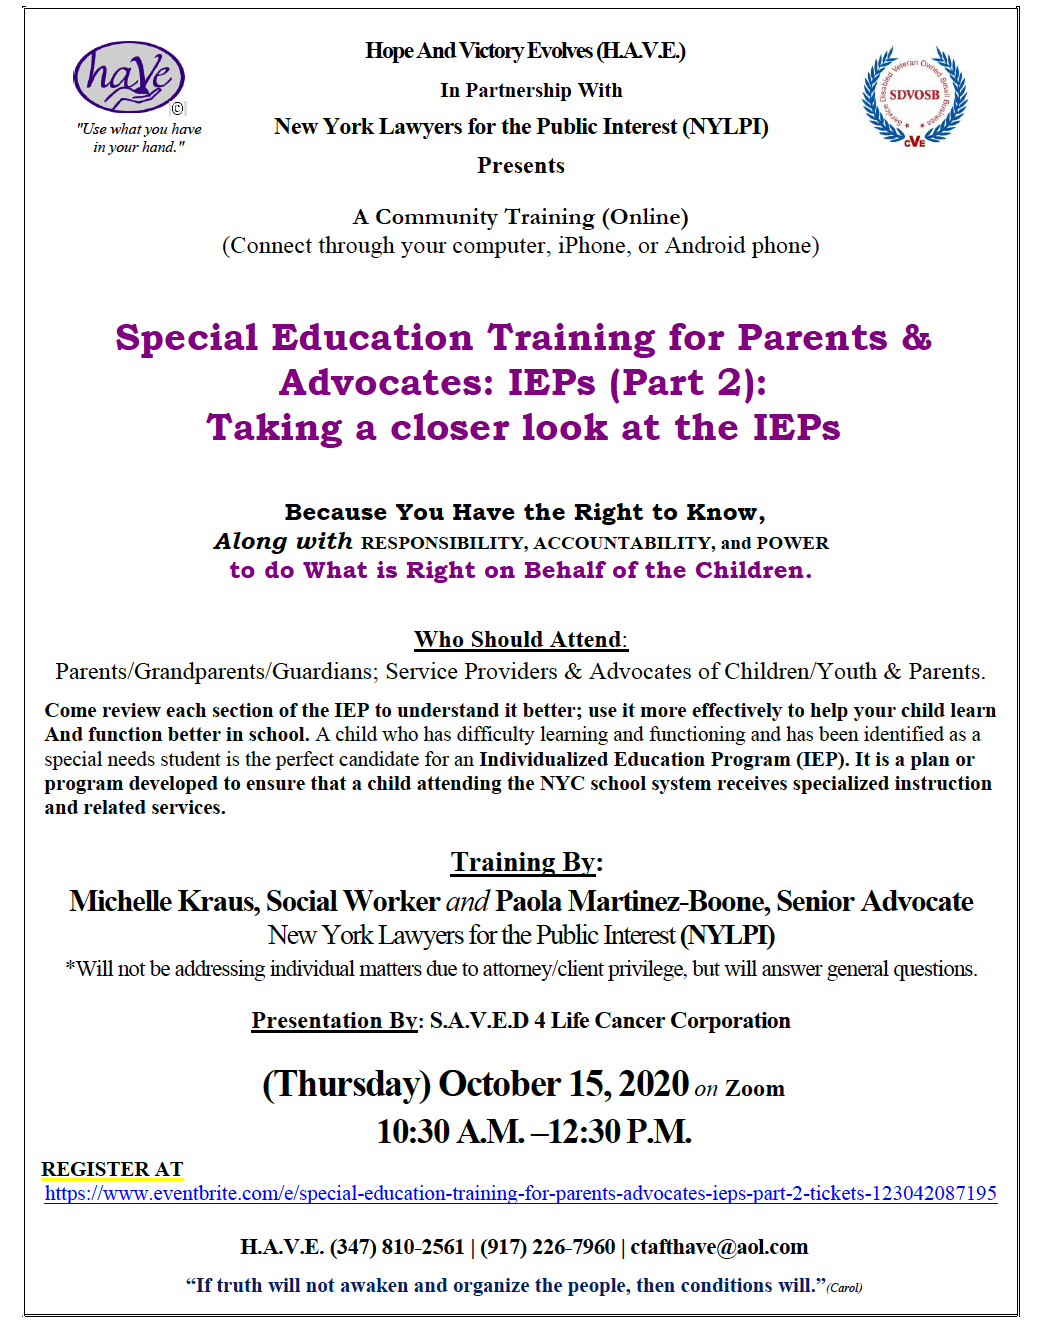 ''Special Education Training for Parents & Advocates: IEPs (Part 2): Taking a Closer Look at the IEPs